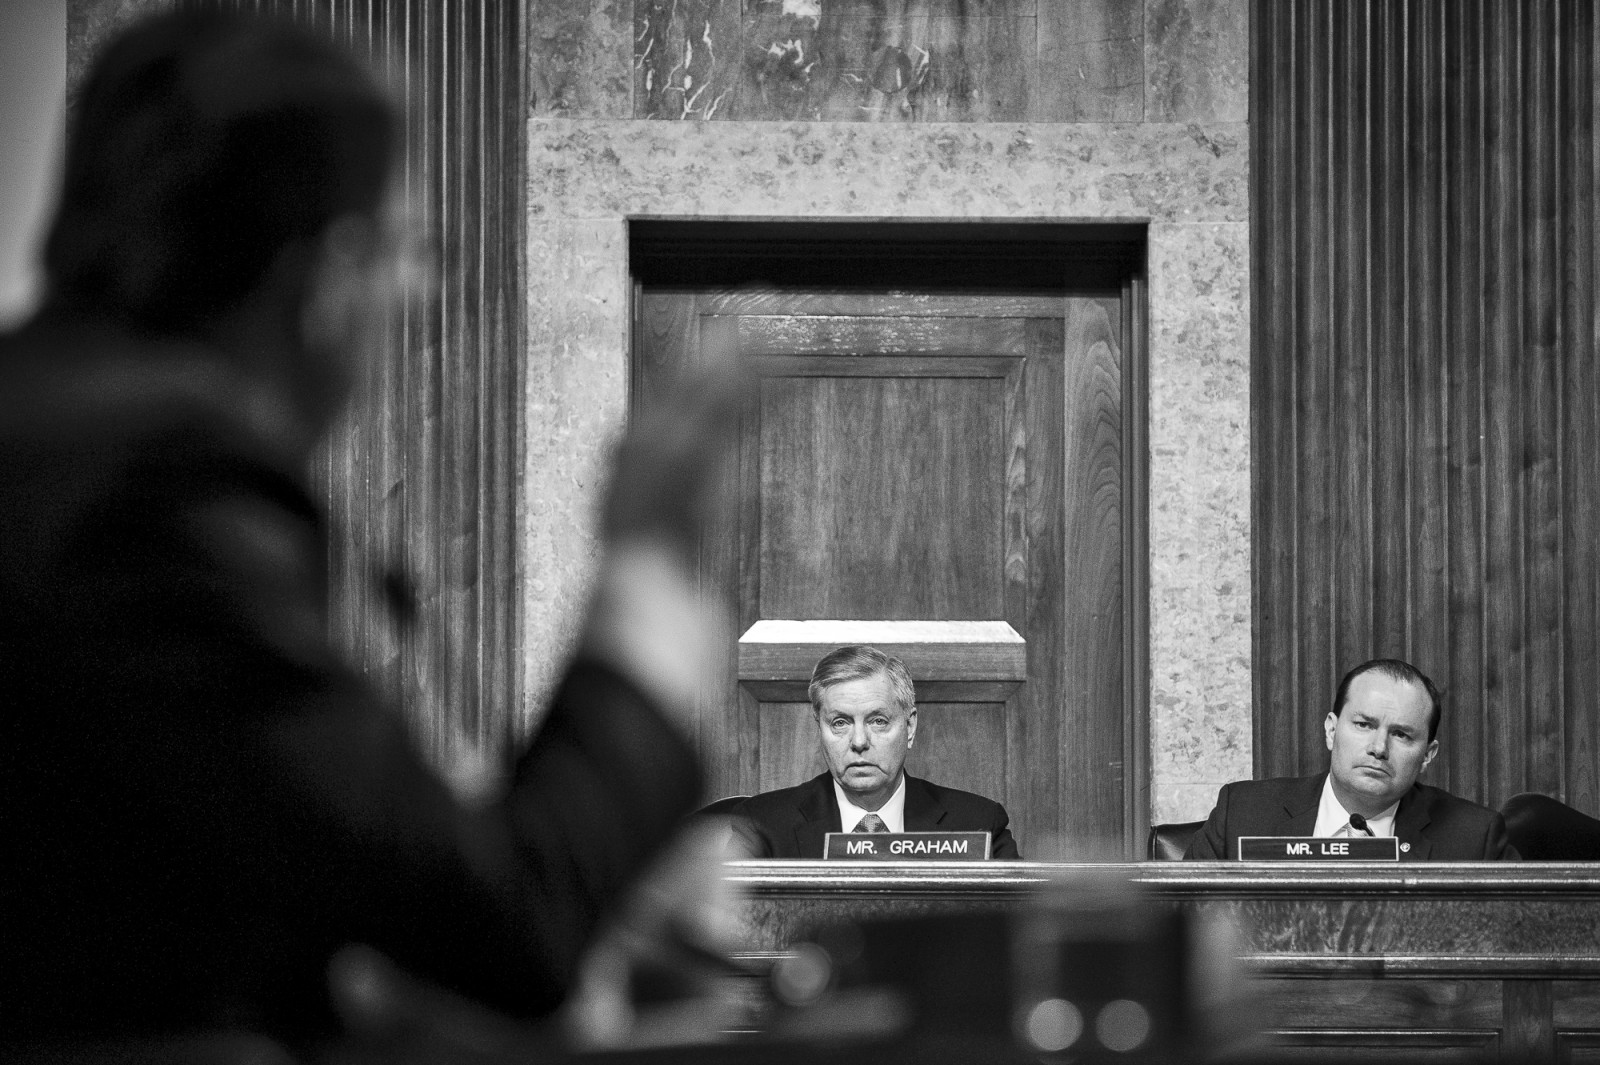 Senators Lindsey Grahman (R-SC) and Mike Lee (R-UT), listen as former deputy secretary of defense, Ashton Carter, testifies before the Senate Armed Services Committee on Capitol Hill during a hearing on his nomination to be Defense Secretary on February 4, 2015. Carter is expected to be approved by the Senate, but still underwent a grilling from lawmakers President Obama's national security policies.